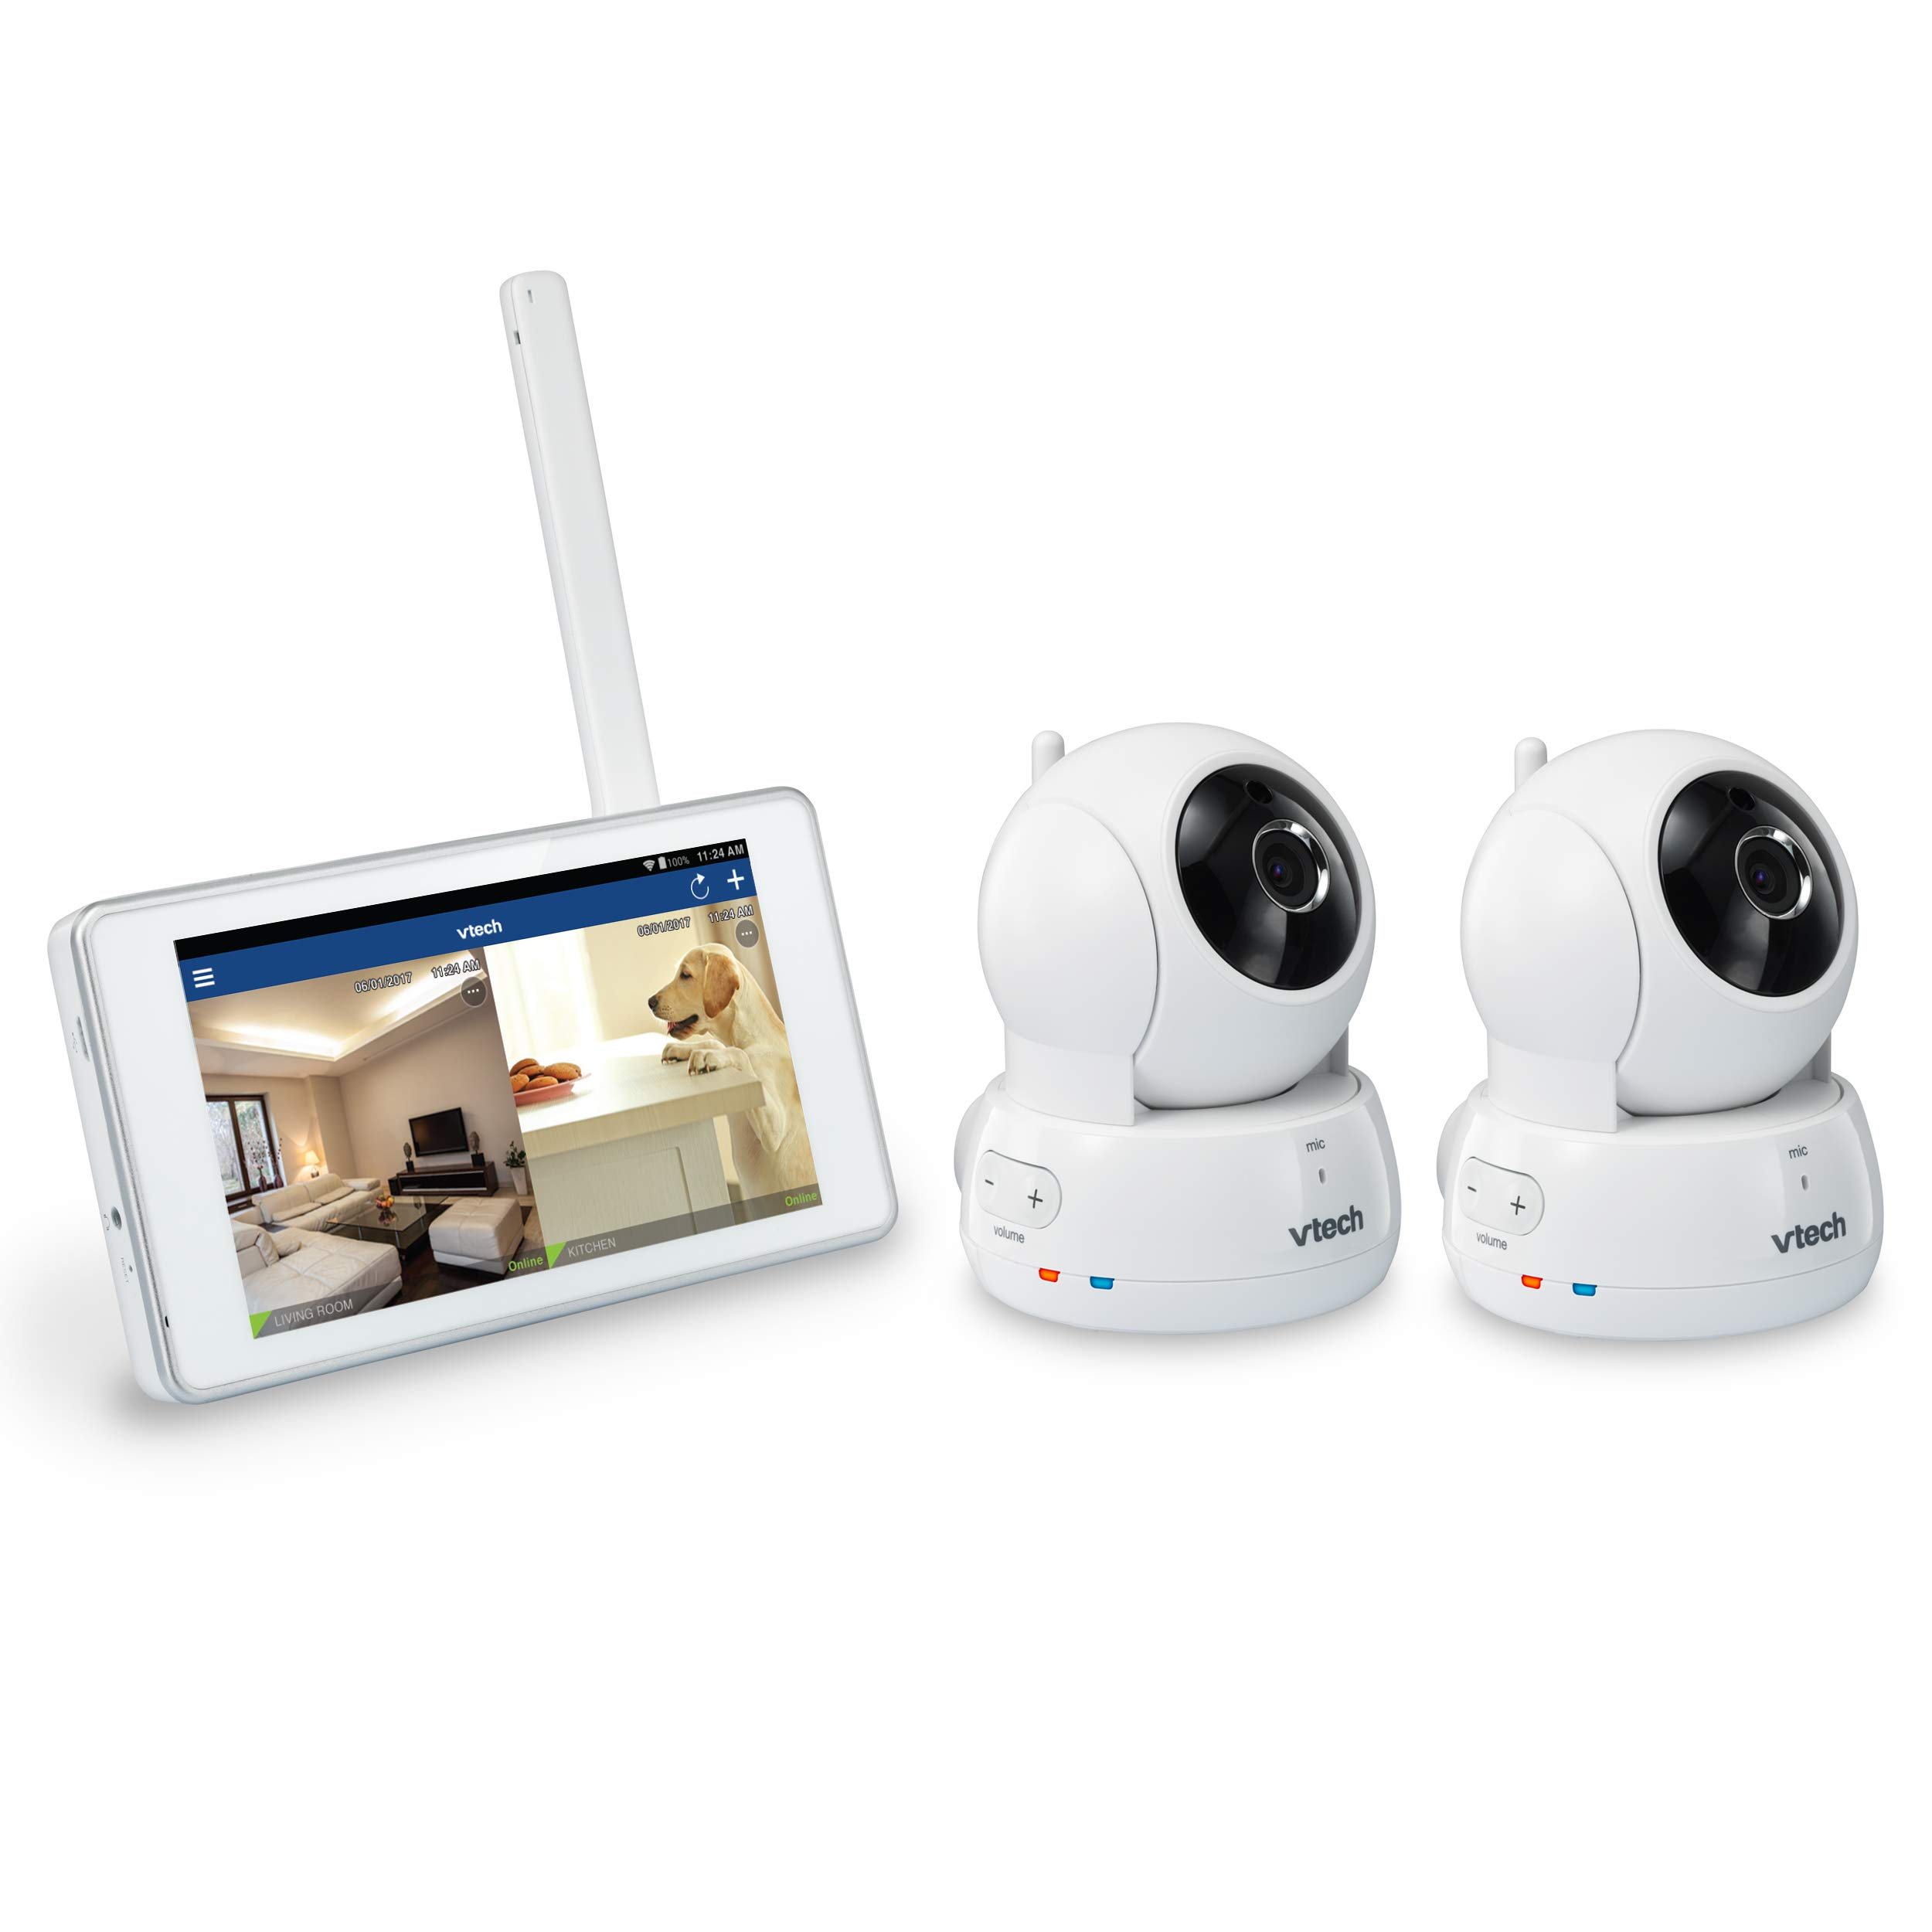 VTech VC9312-245 Wi-Fi IP Camera with 720p HD, Remote Pan & Tilt, Free Live Streaming, Automatic Infrared Night Vision & 5'' Home Viewer, Silver/White